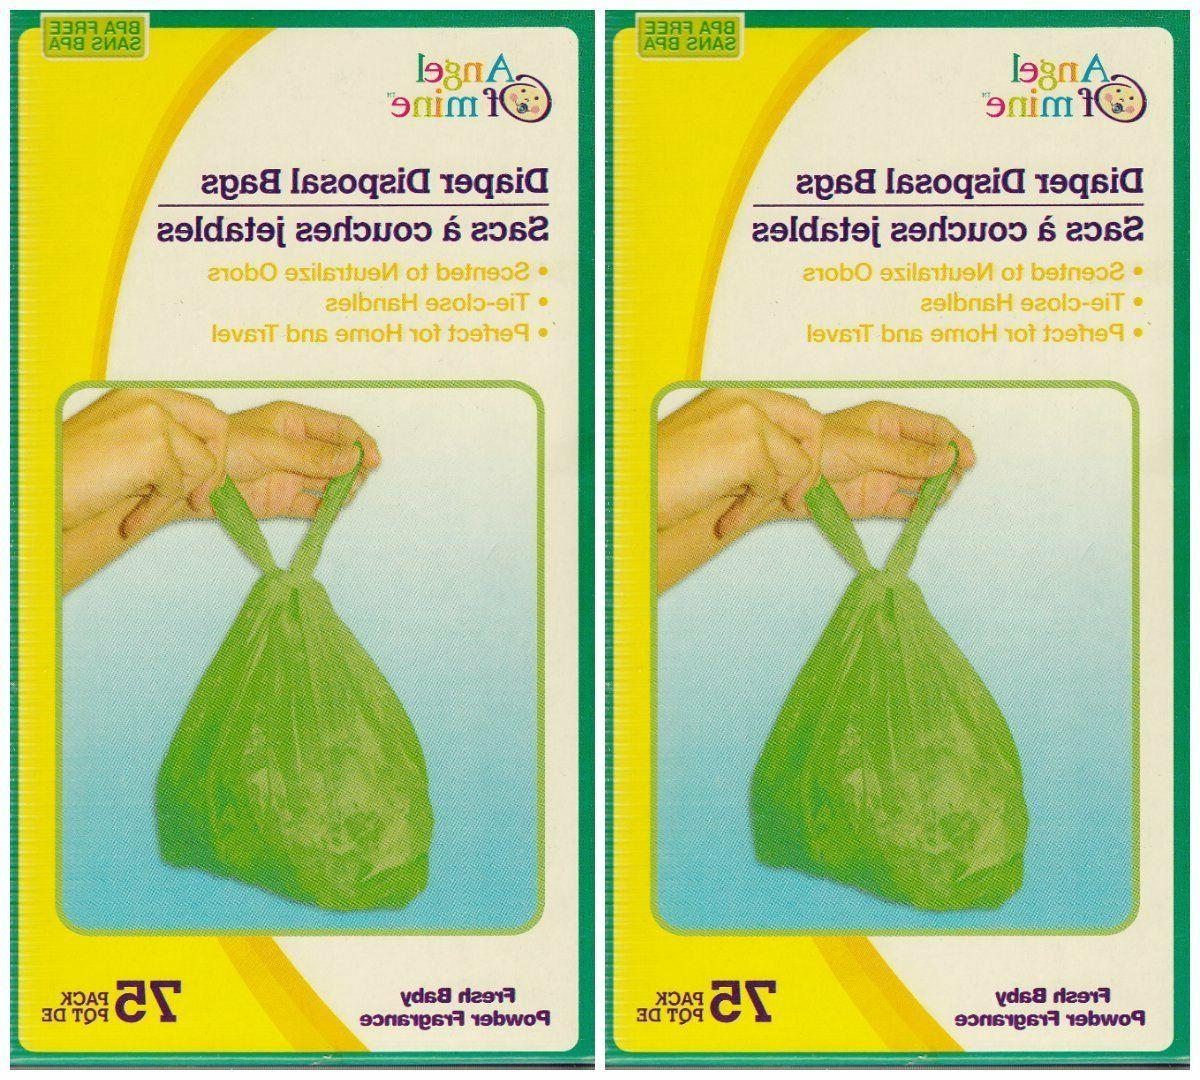 Disposable Bags 150 ct, or